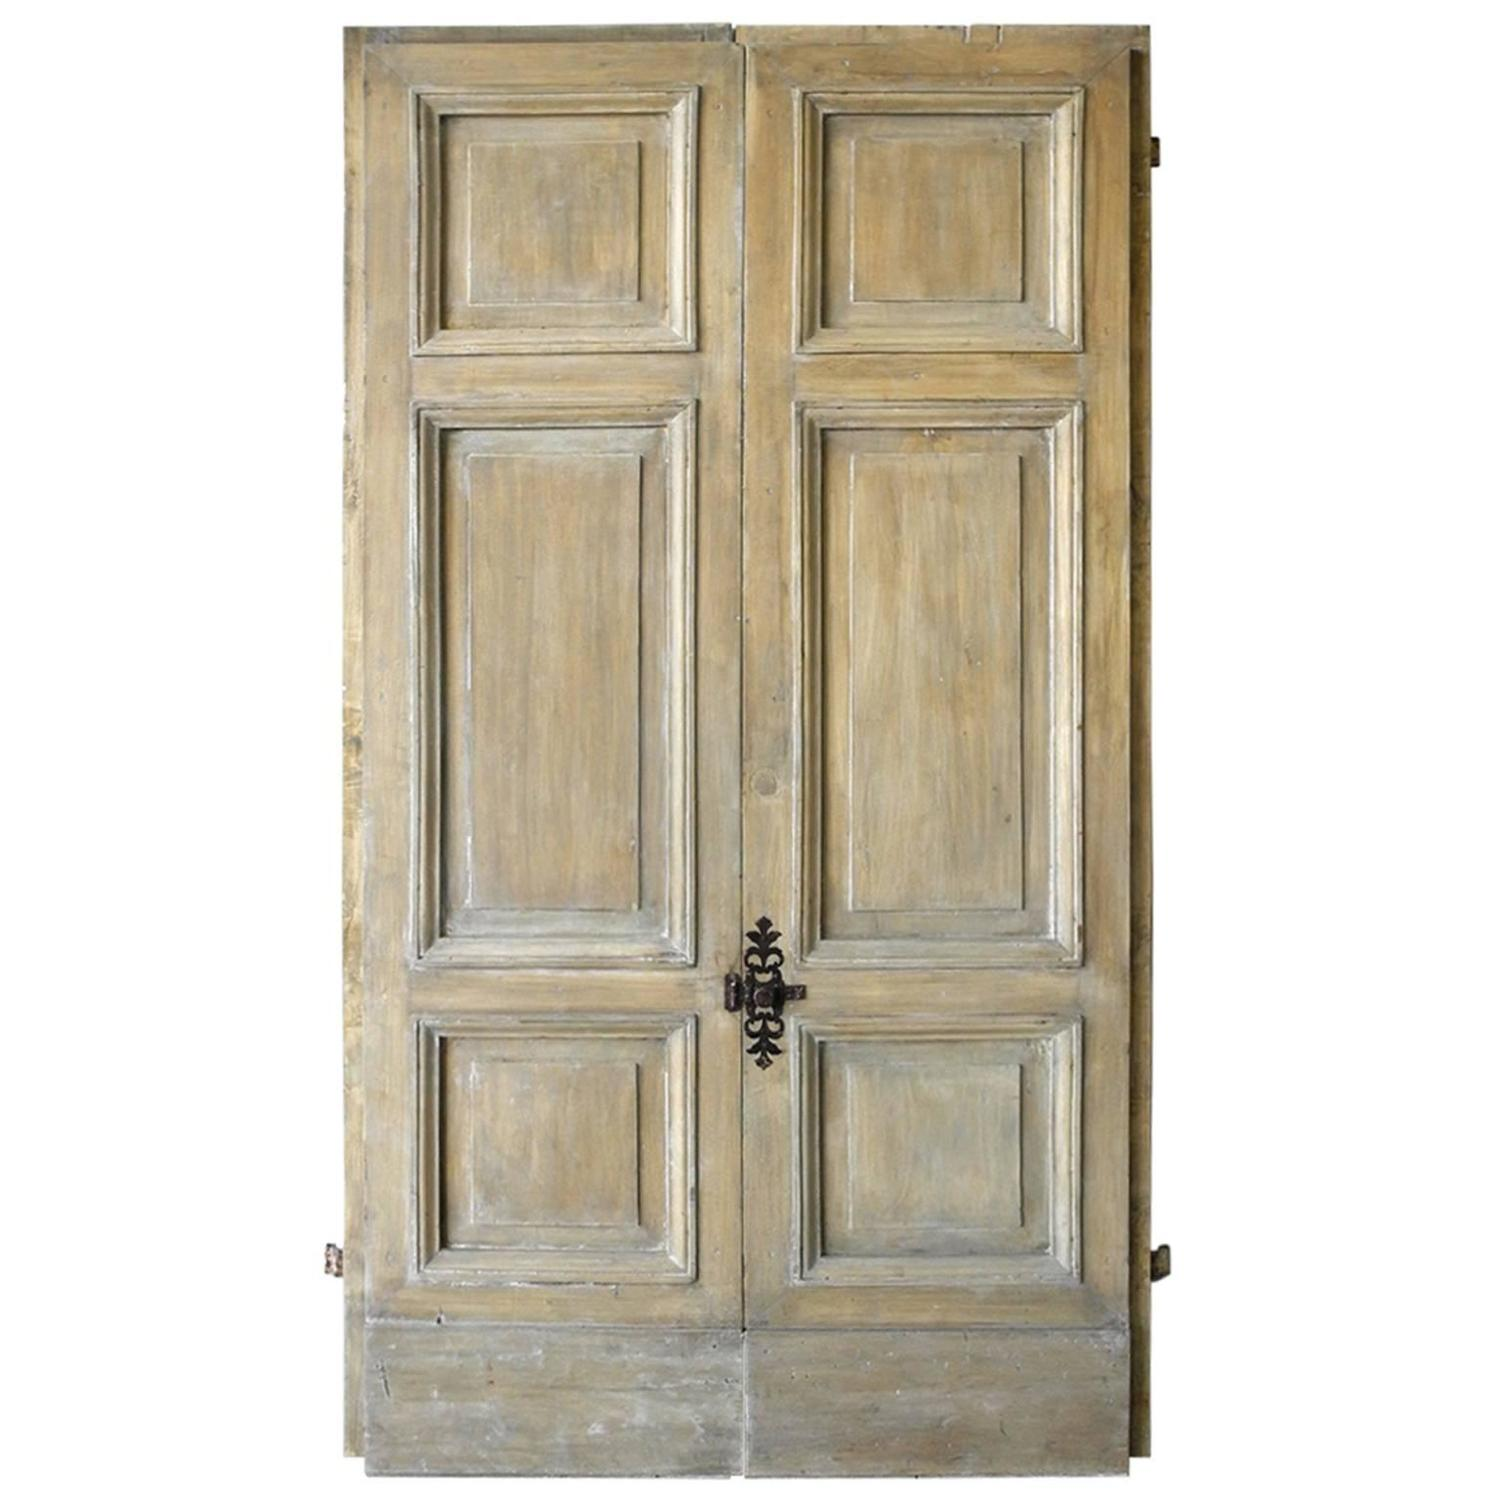 Pair Of Antique Italian 18th Century Wooden Doors With Panelling And Iron  Hardware For Sale At 1stdibs